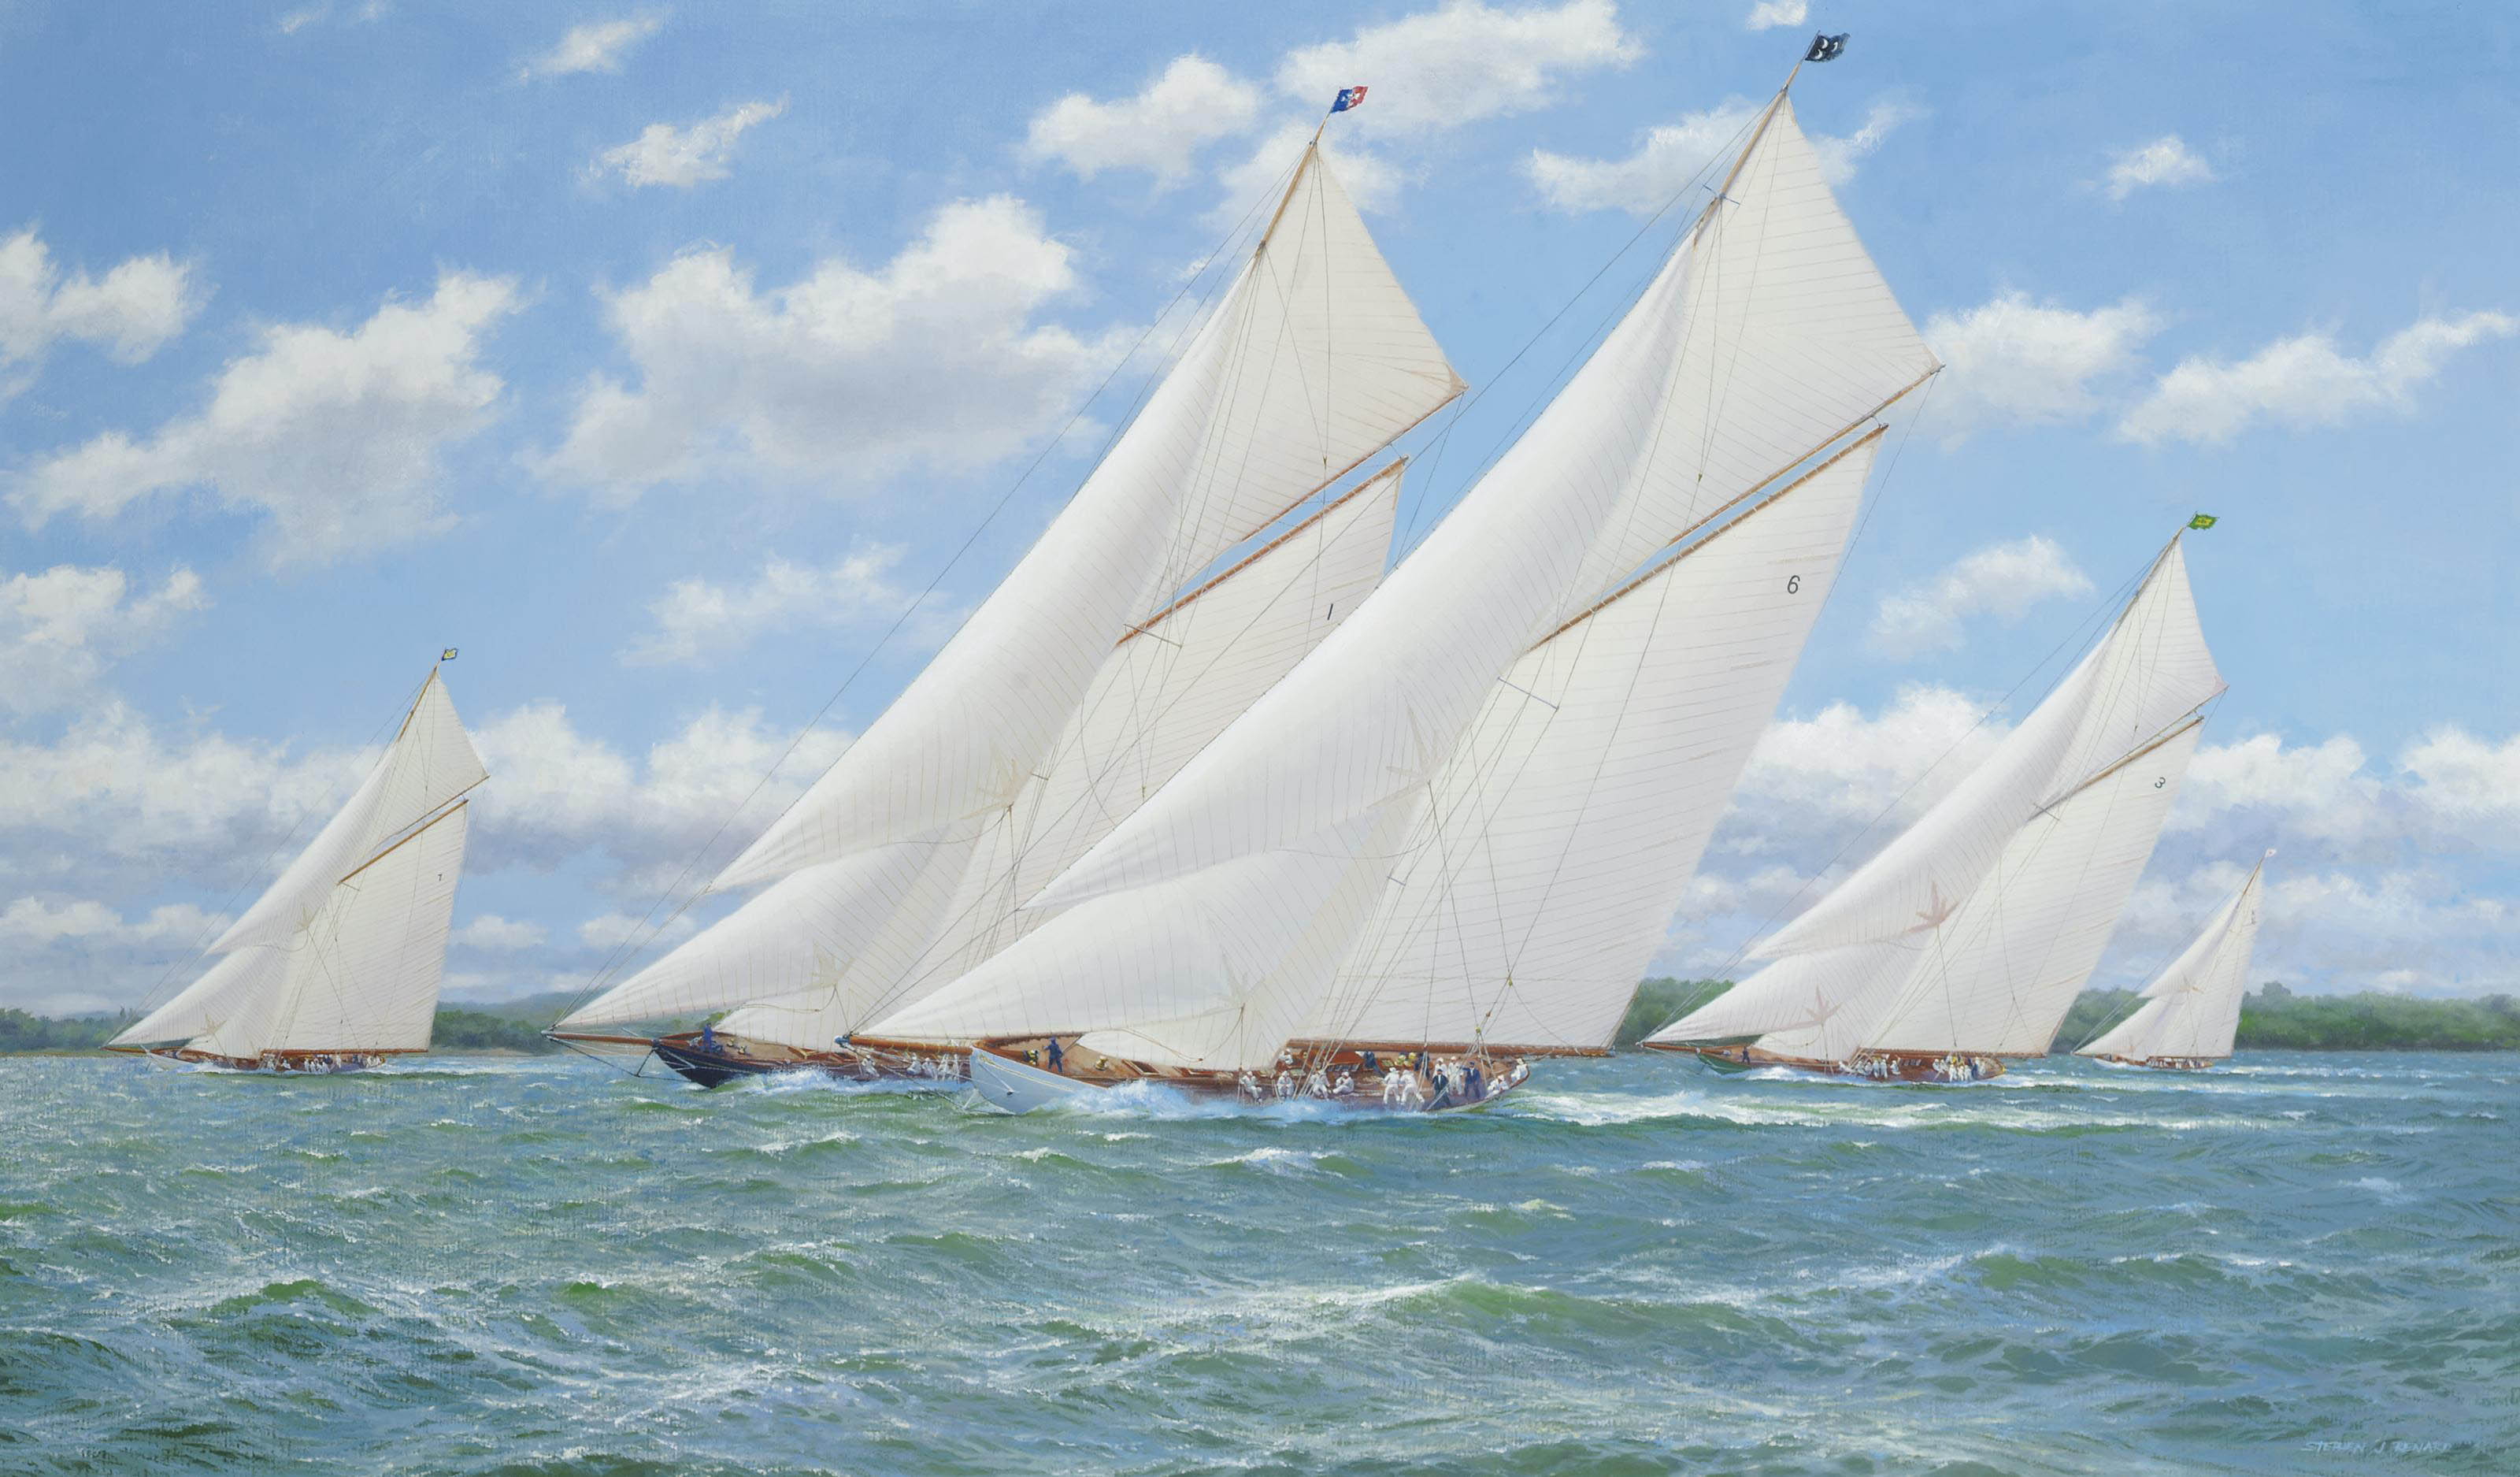 White Heather (II) leading the pack in the Solent with Lulworth and Britannia to leeward  and Shamrock (V) and Candida astern